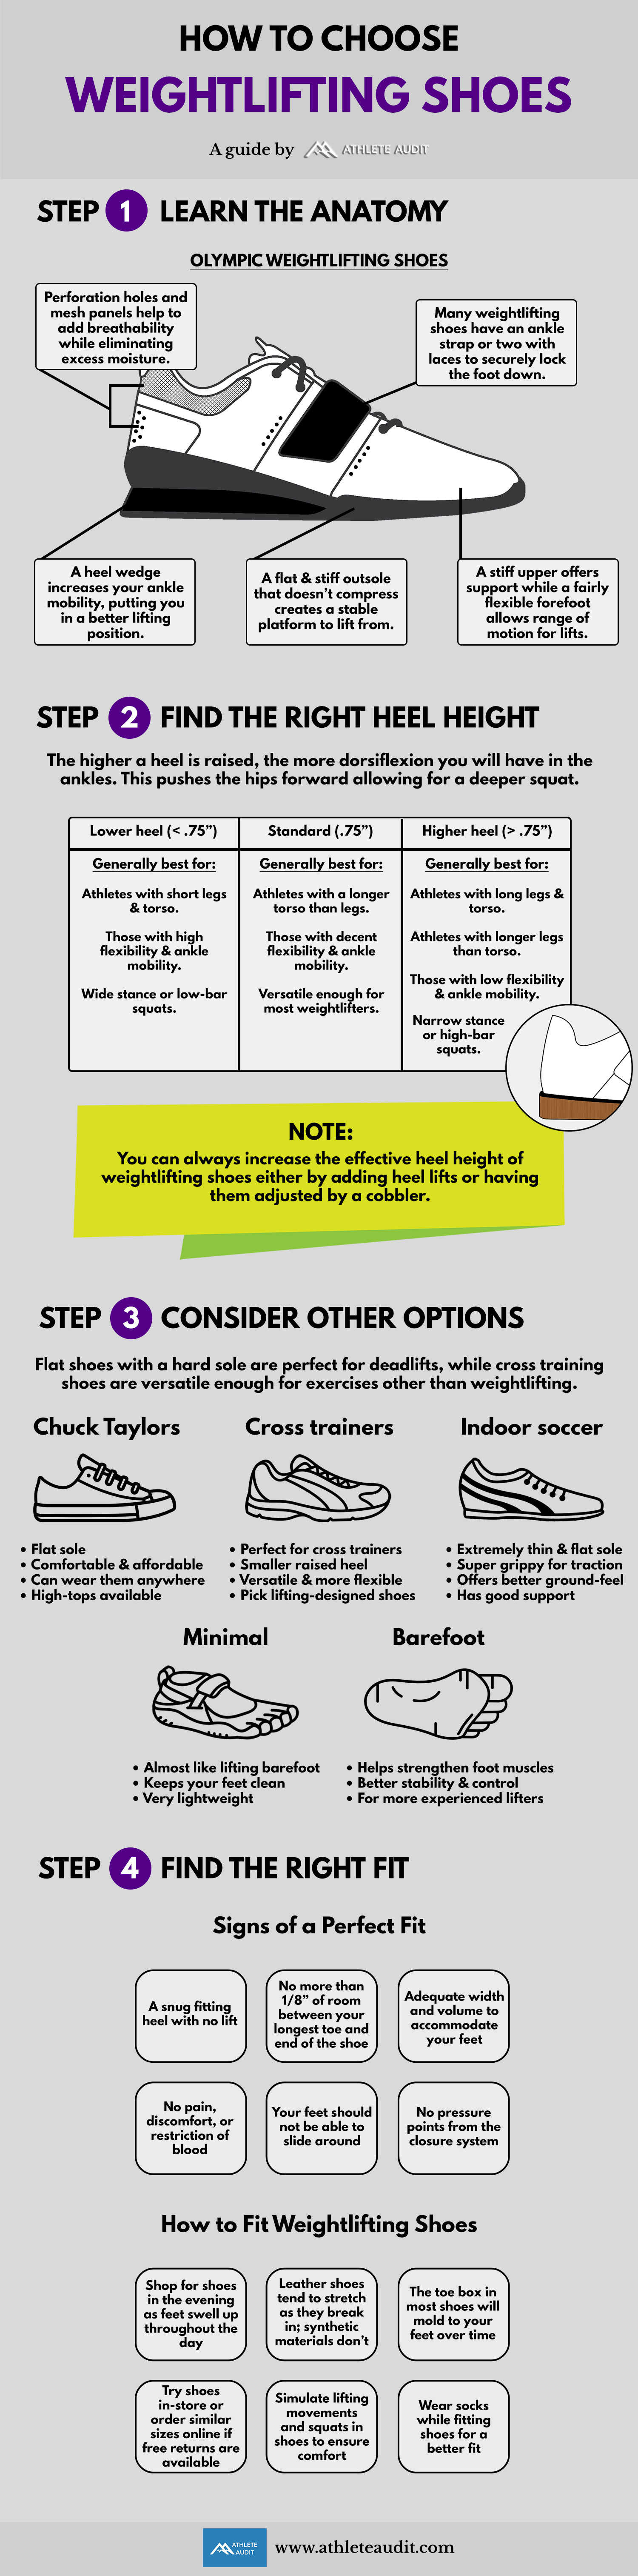 How to Choose Weightlifting Shoes - Infographic - Athlete Audit